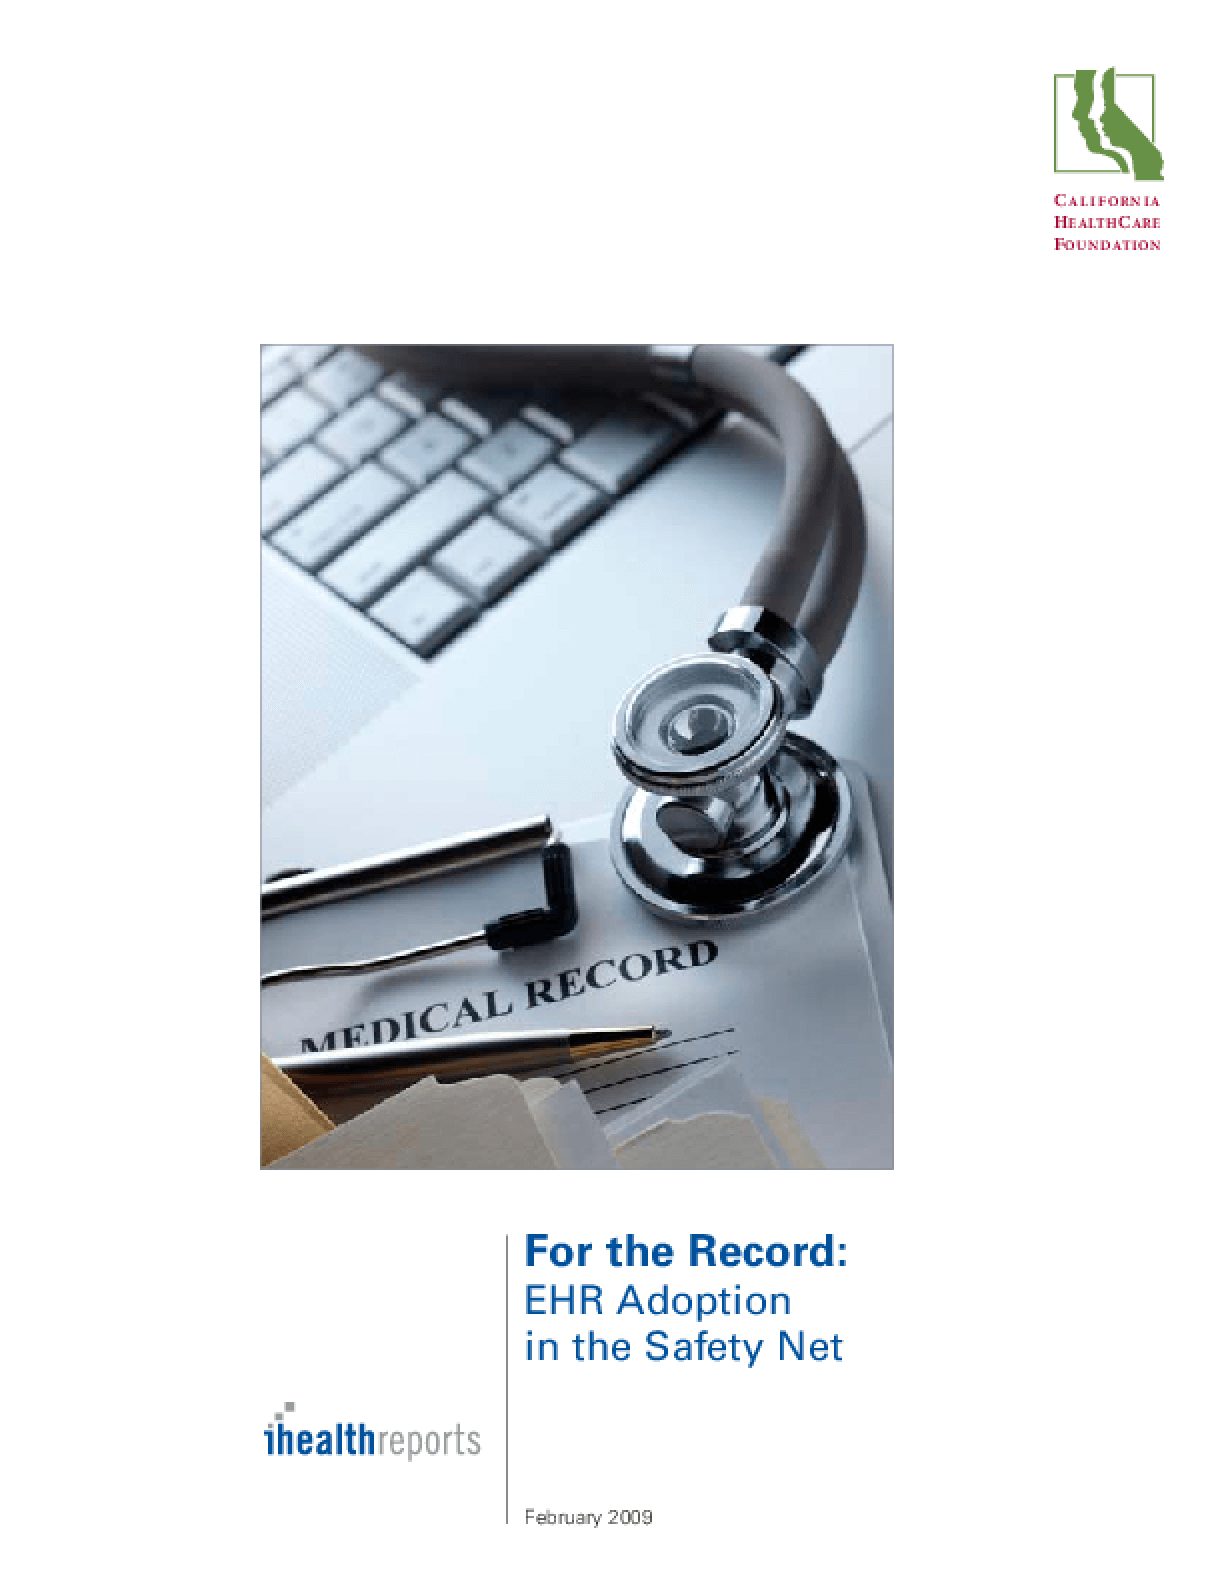 For the Record: EHR Adoption in the Safety Net